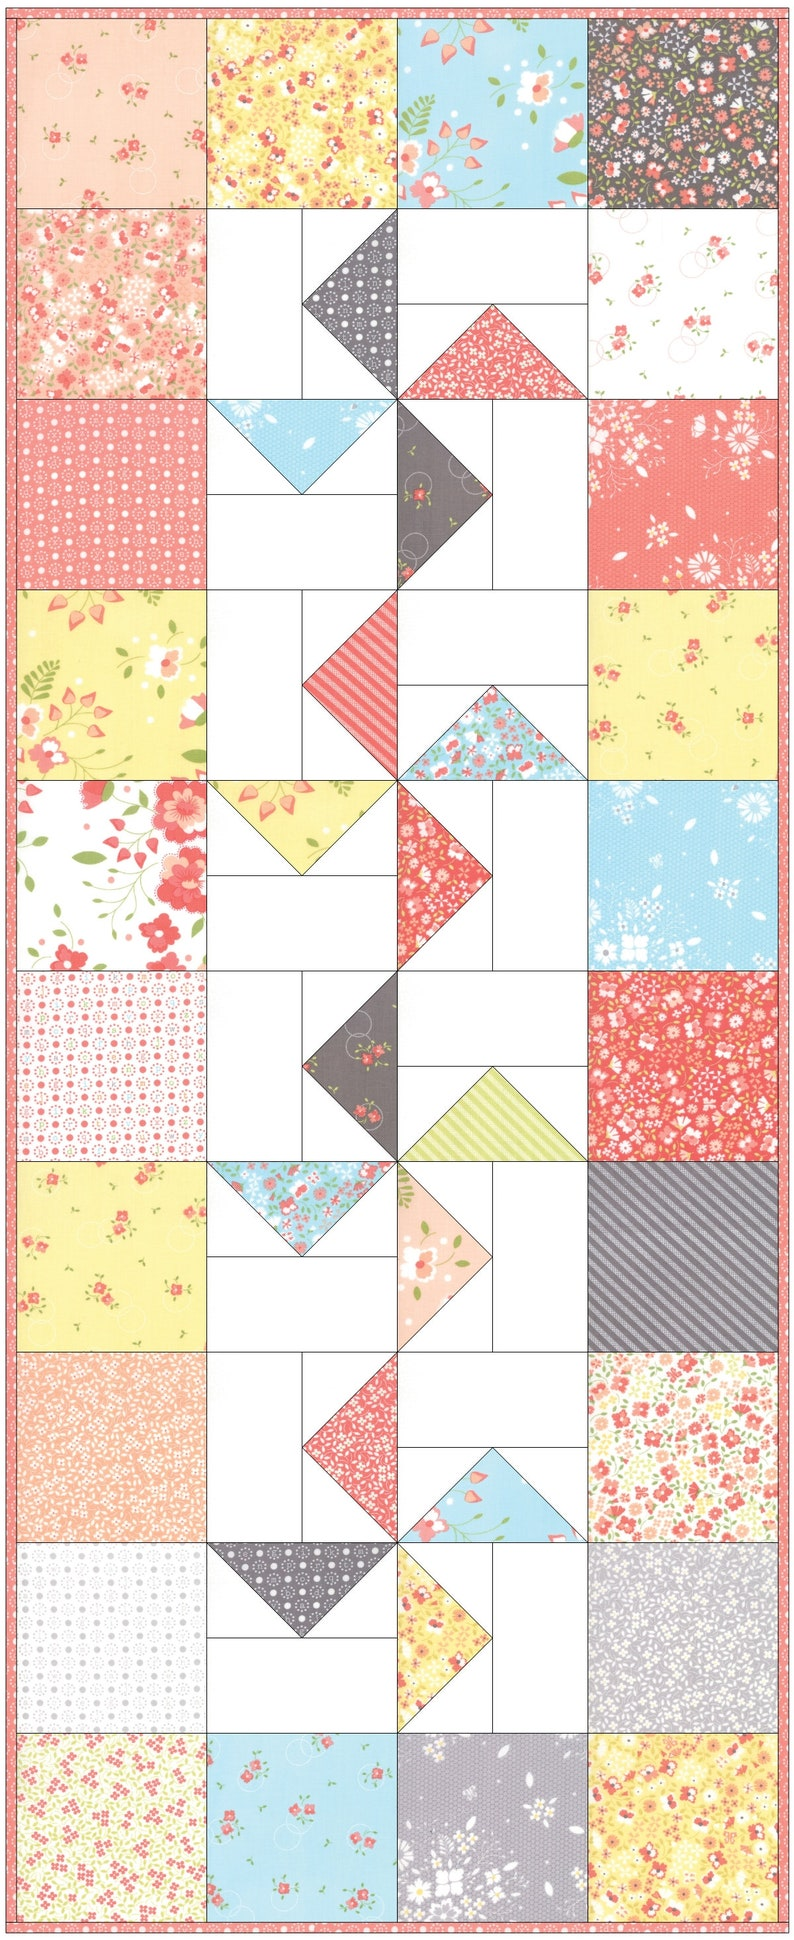 Charm Square Table Runner Pattern Windmills Quilted Table image 0